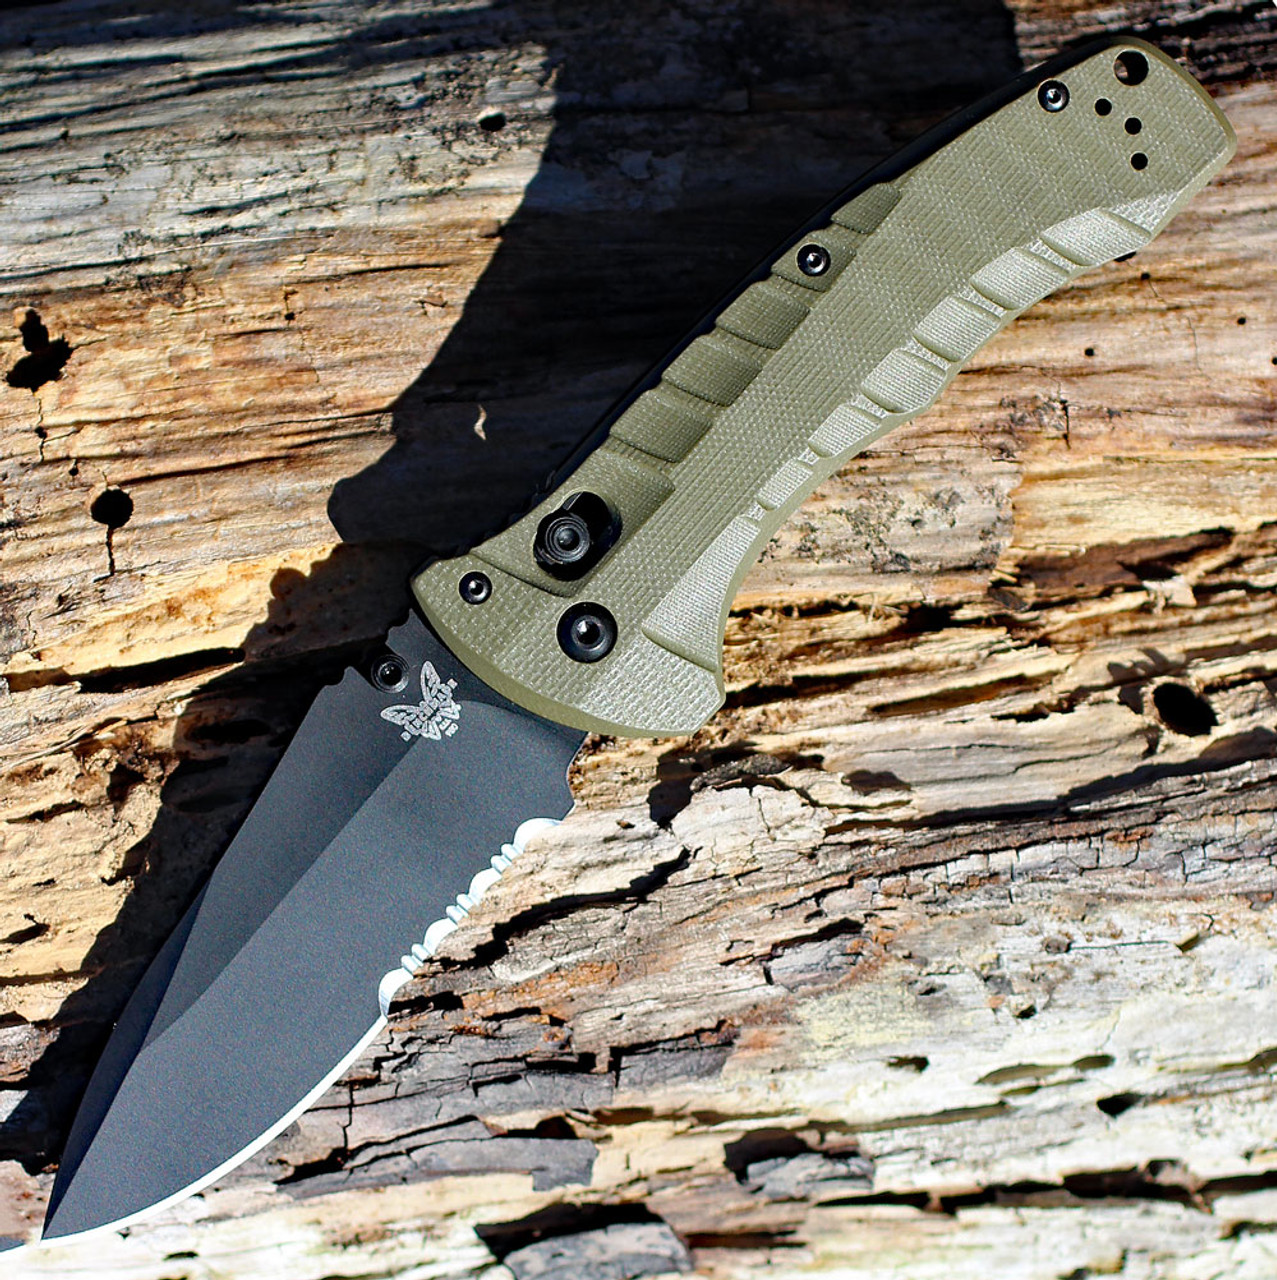 """Benchmade 980SBK Turret Axis Lock, 3.70"""" CPM-S30V Black Serrated Blade, Olive Drab G10 handles"""